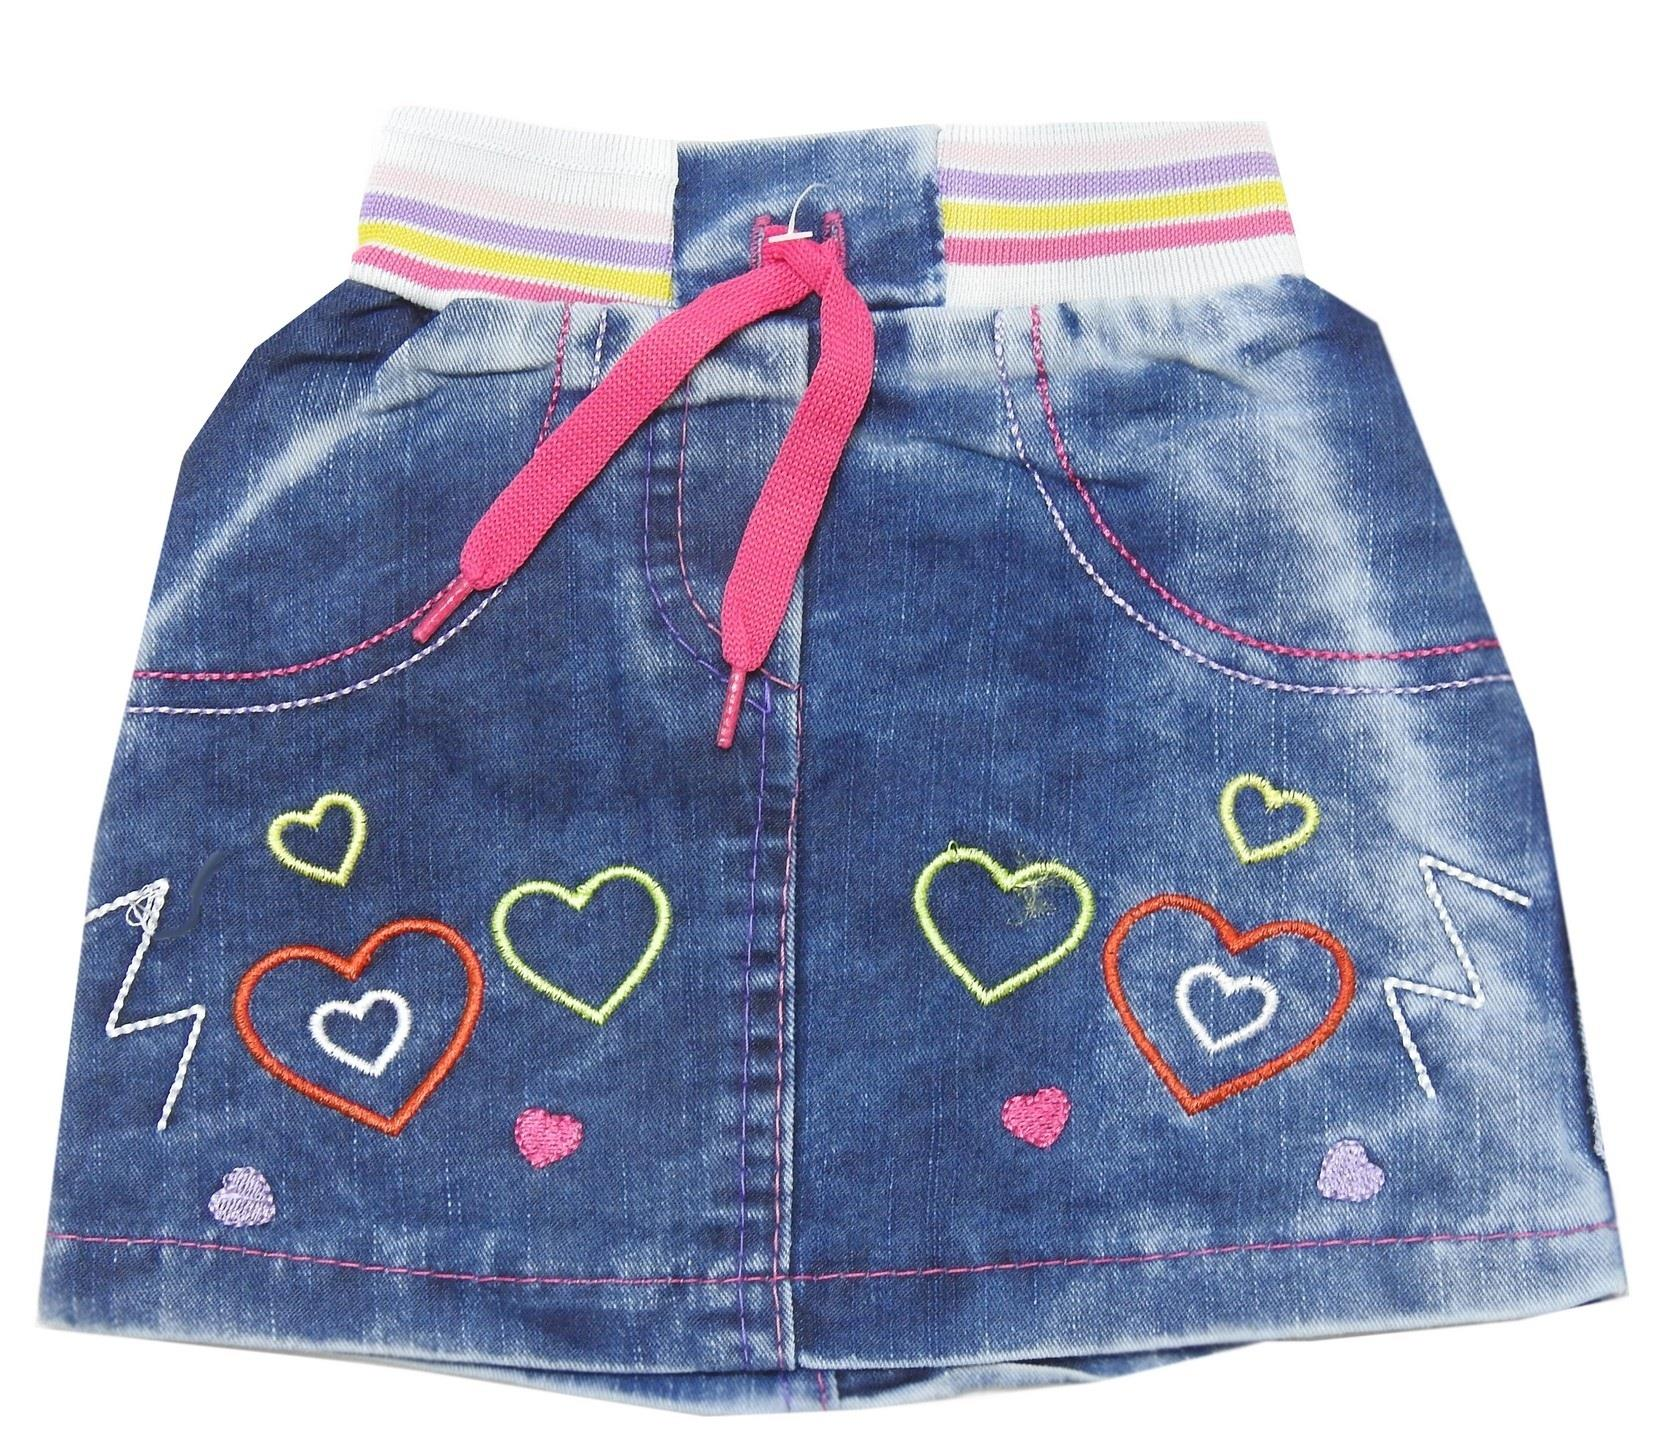 FLOWERY & HEARTED EMBROIDERY ASSORTED SKIRTS  FOR GIRL (1-2-3-4 AGE)